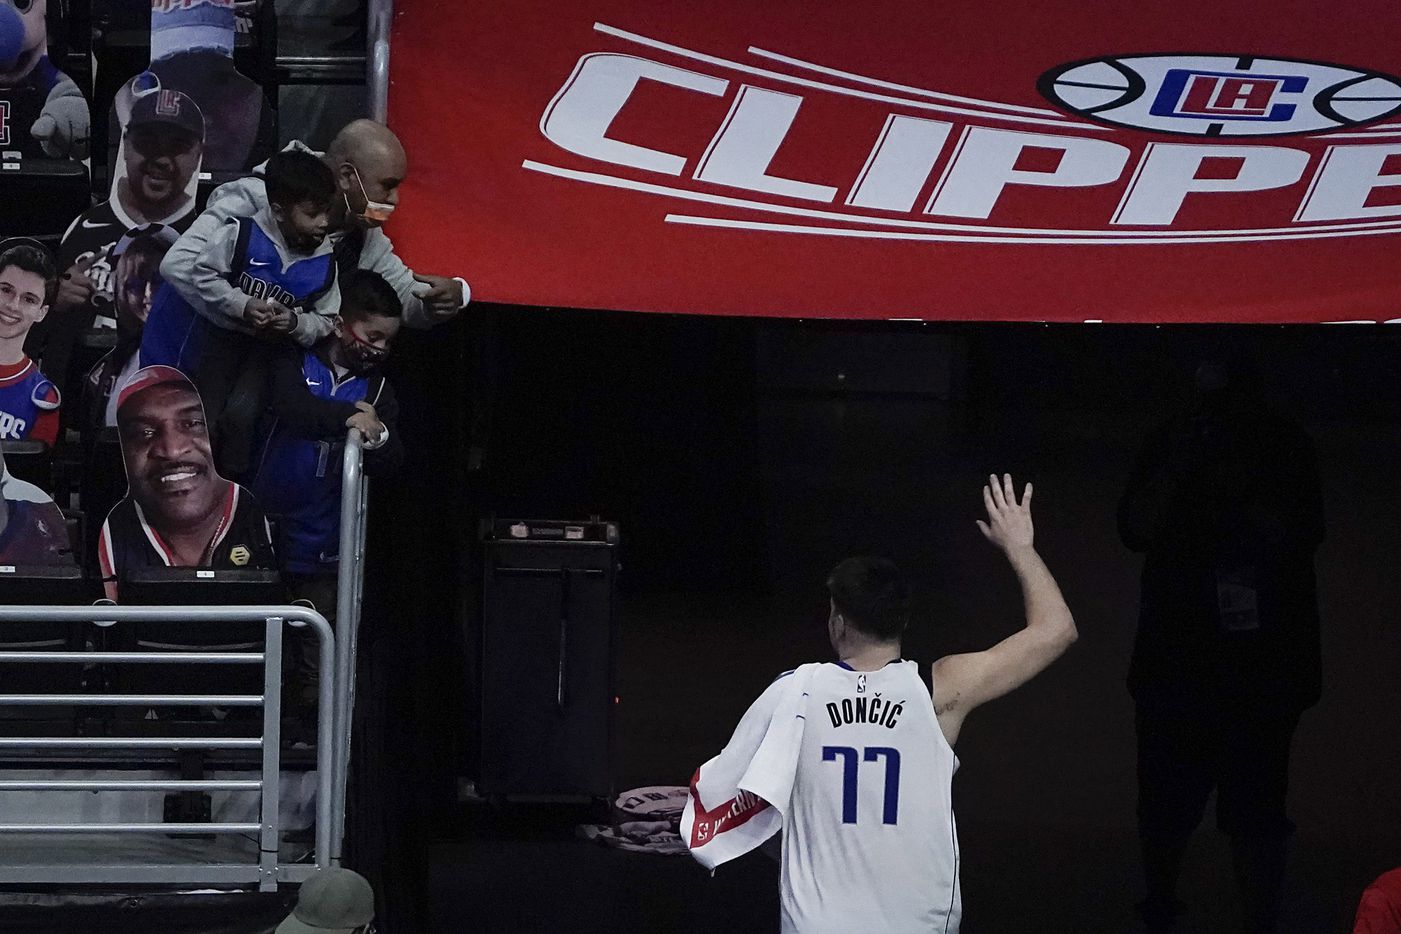 Dallas Mavericks guard Luka Doncic wave to fans as he leaves the court after a 113-103 victory over the LA Clippers in an NBA playoff basketball game at Staples Center on Saturday, May 22, 2021, in Los Angeles.